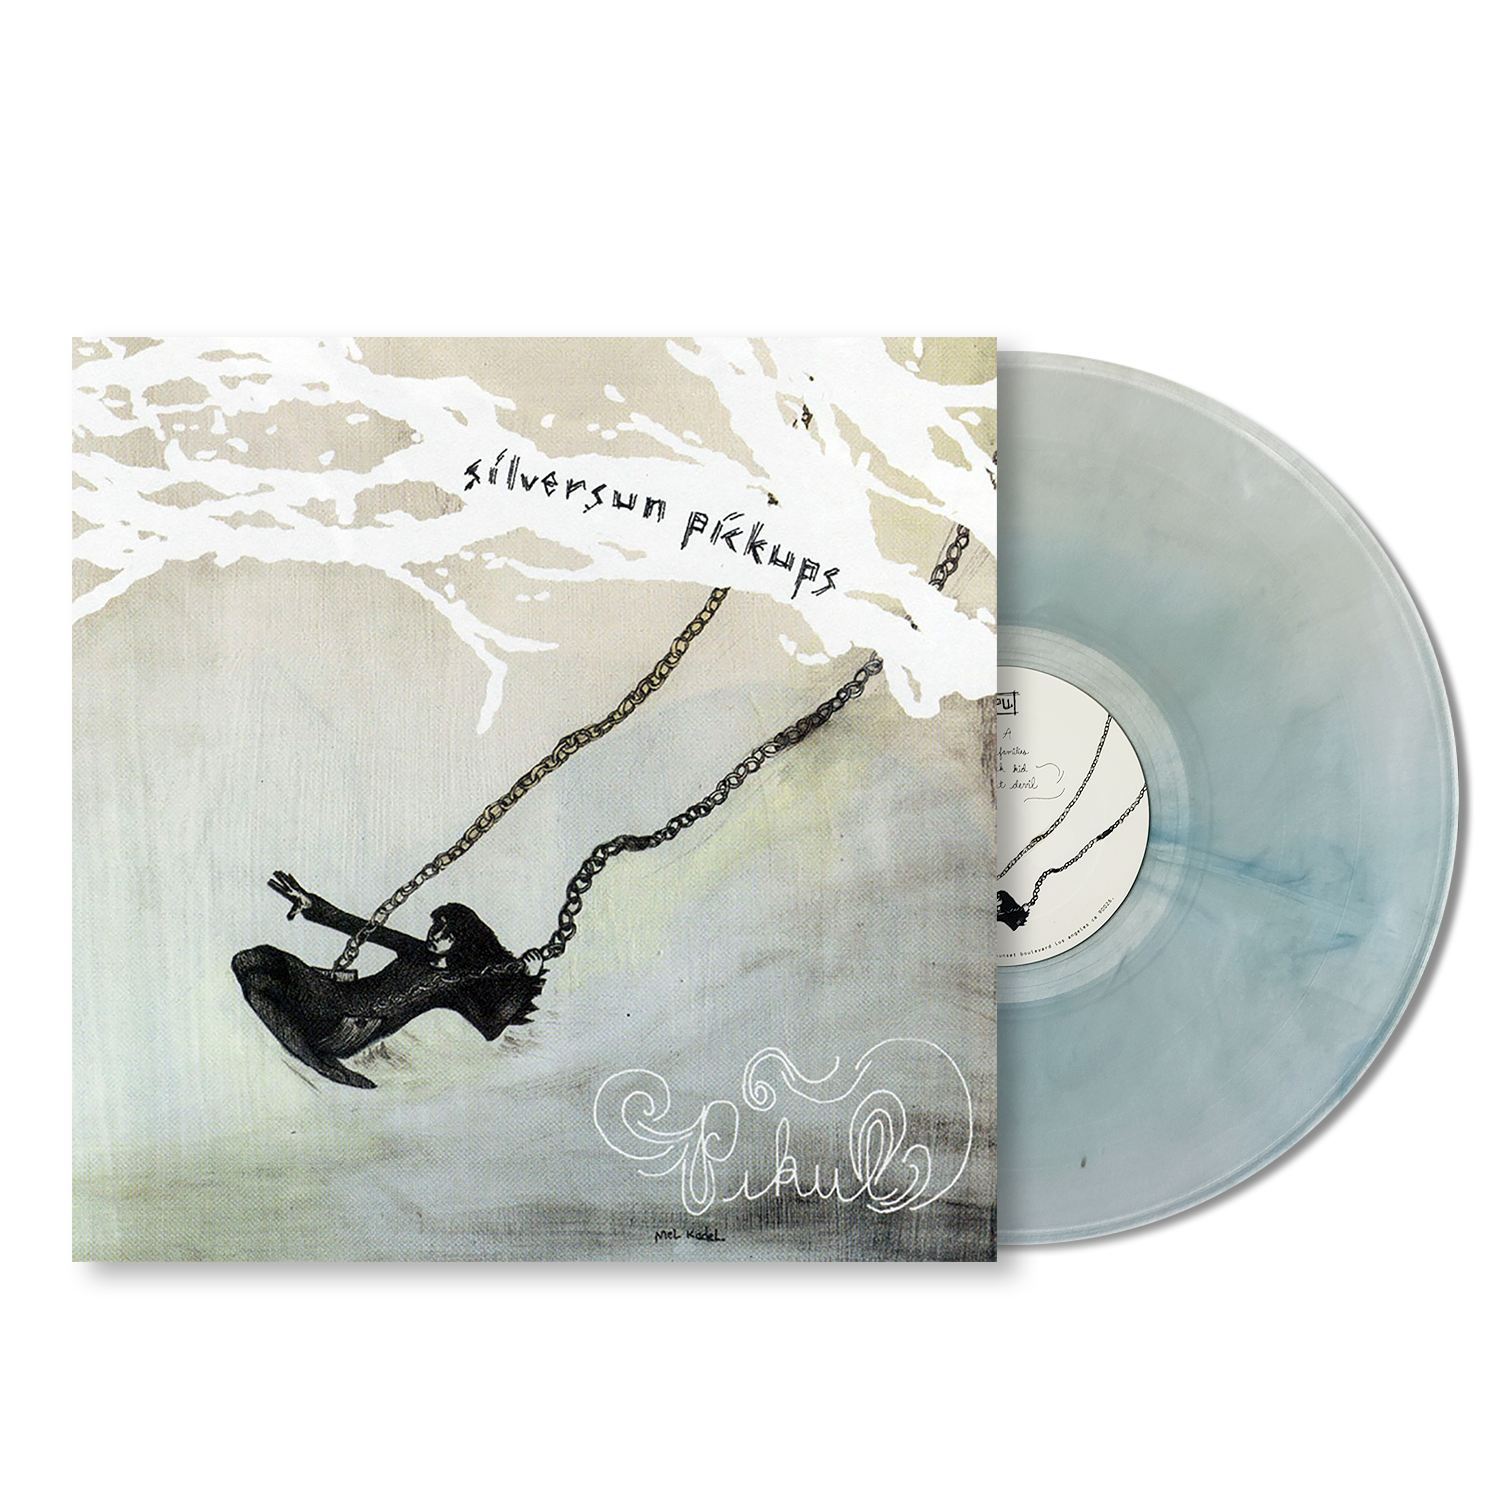 Silversun Pickups - Pikul LP - Blue Translucent Colored Vinyl